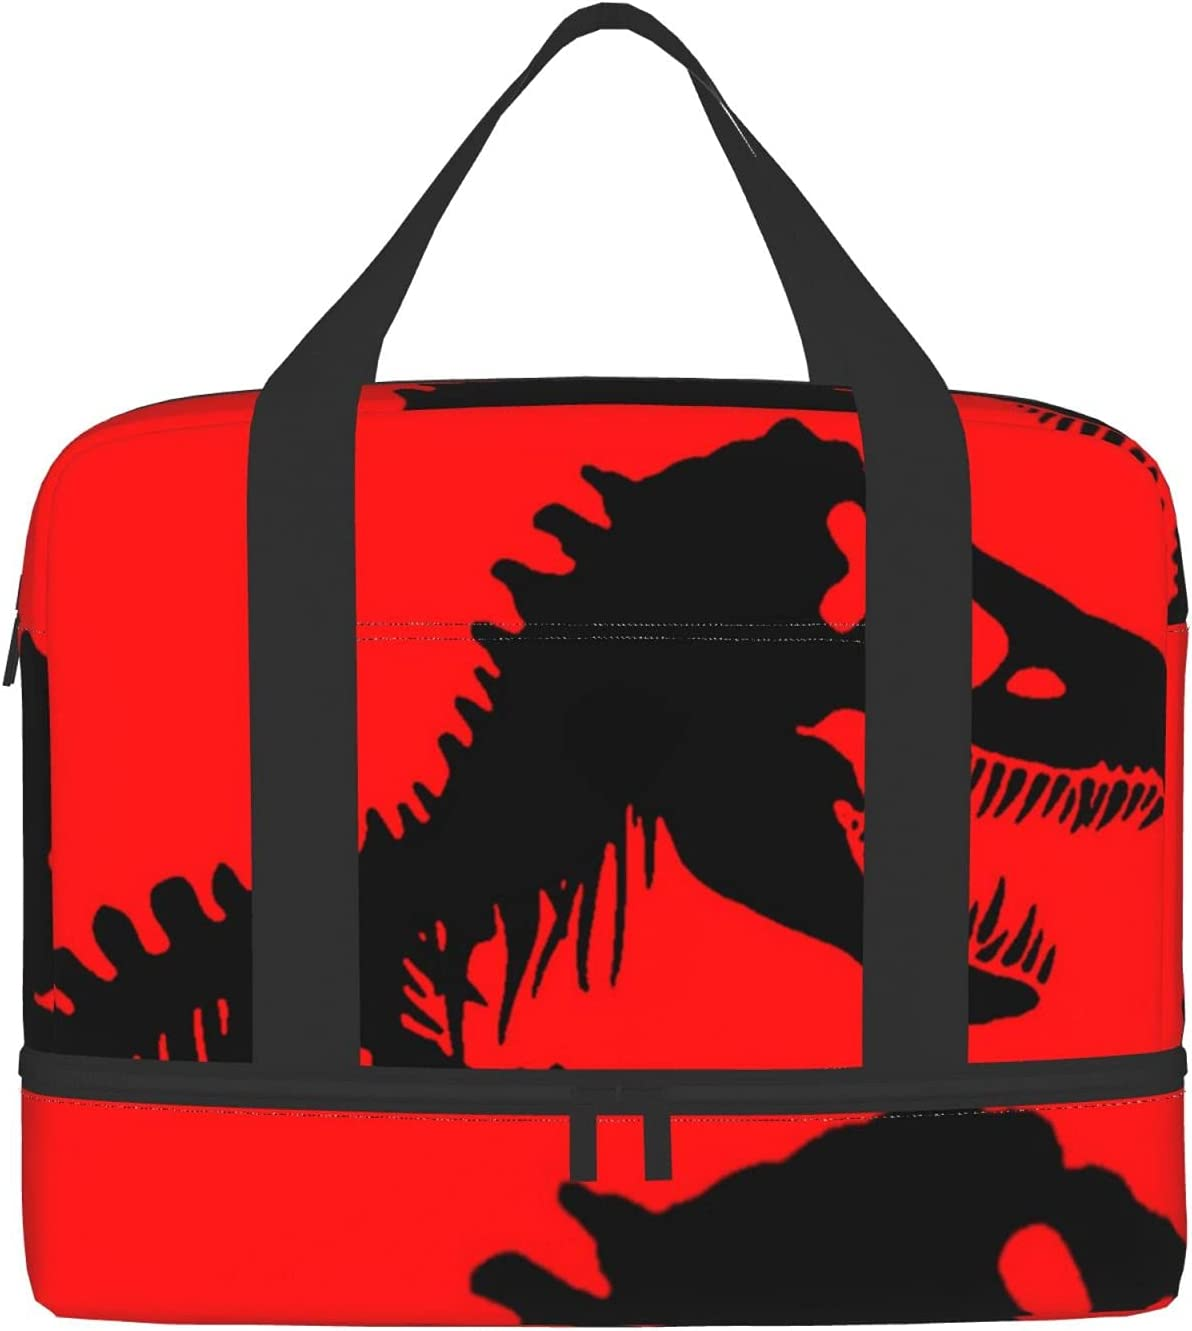 Dinosaur Sports Gym Bag With Compartment Wet Pocket discount Tra Max 47% OFF Shoes